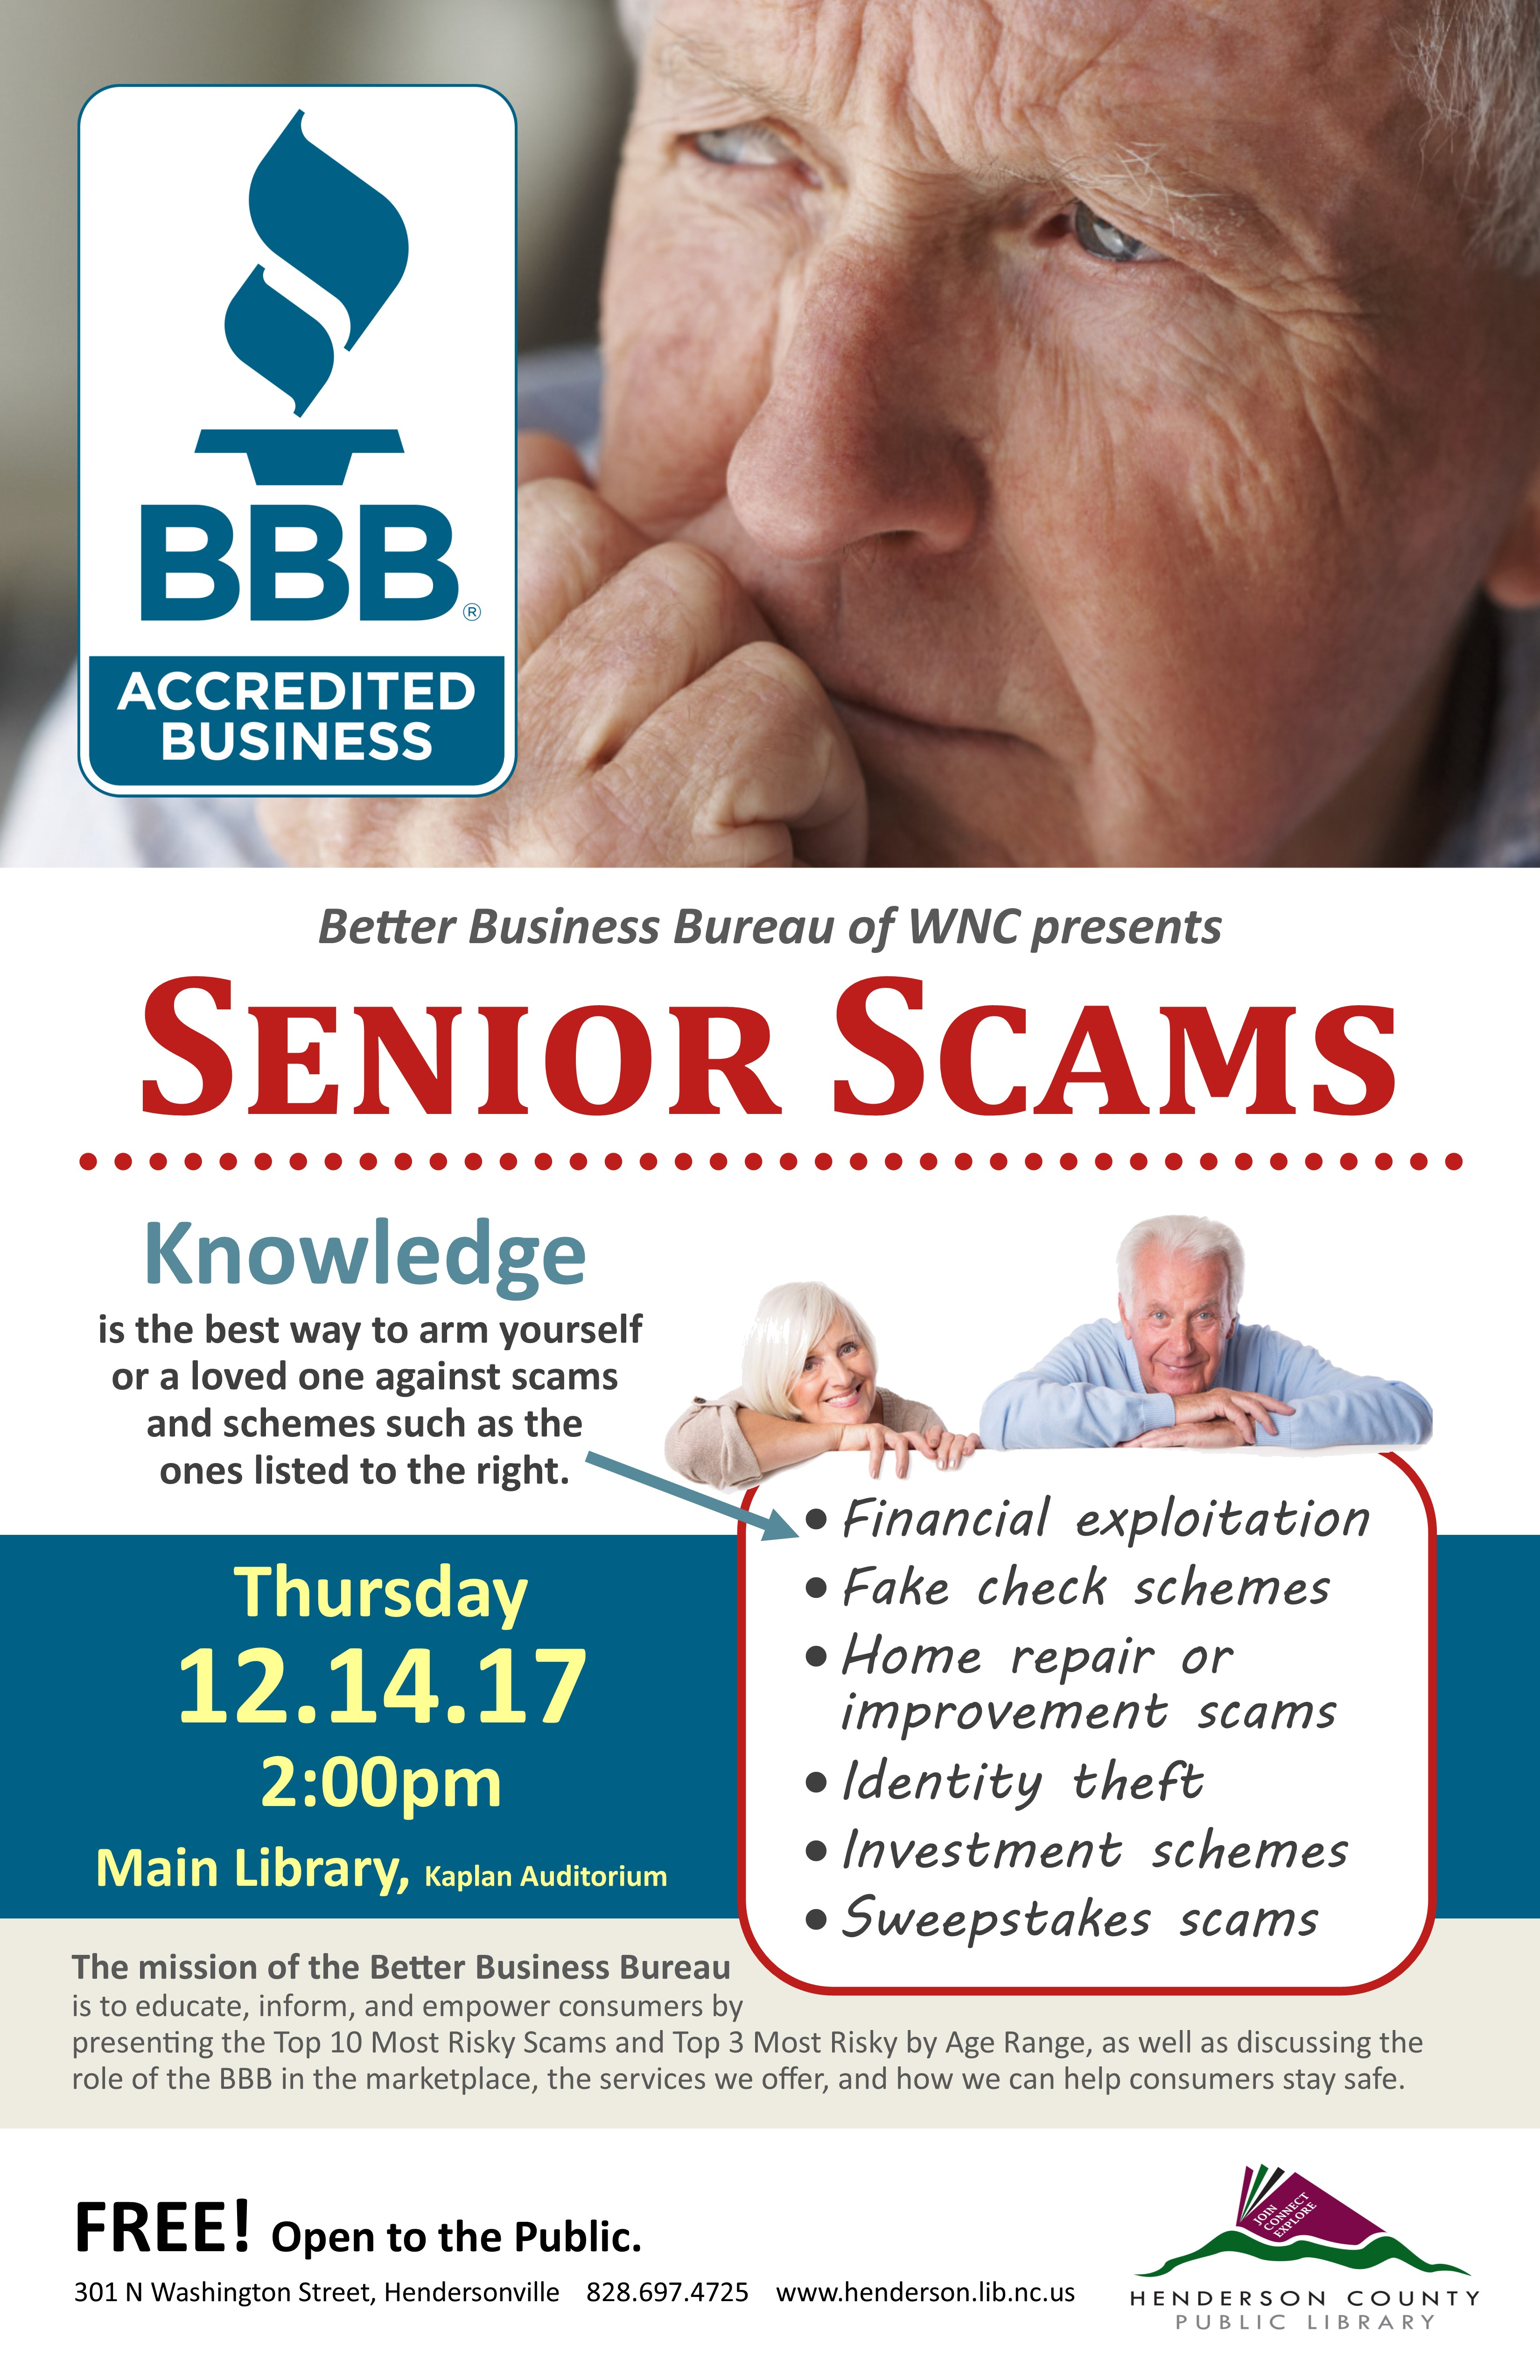 Better Business Bureau of Asheville and WNC Presents Senior Scams